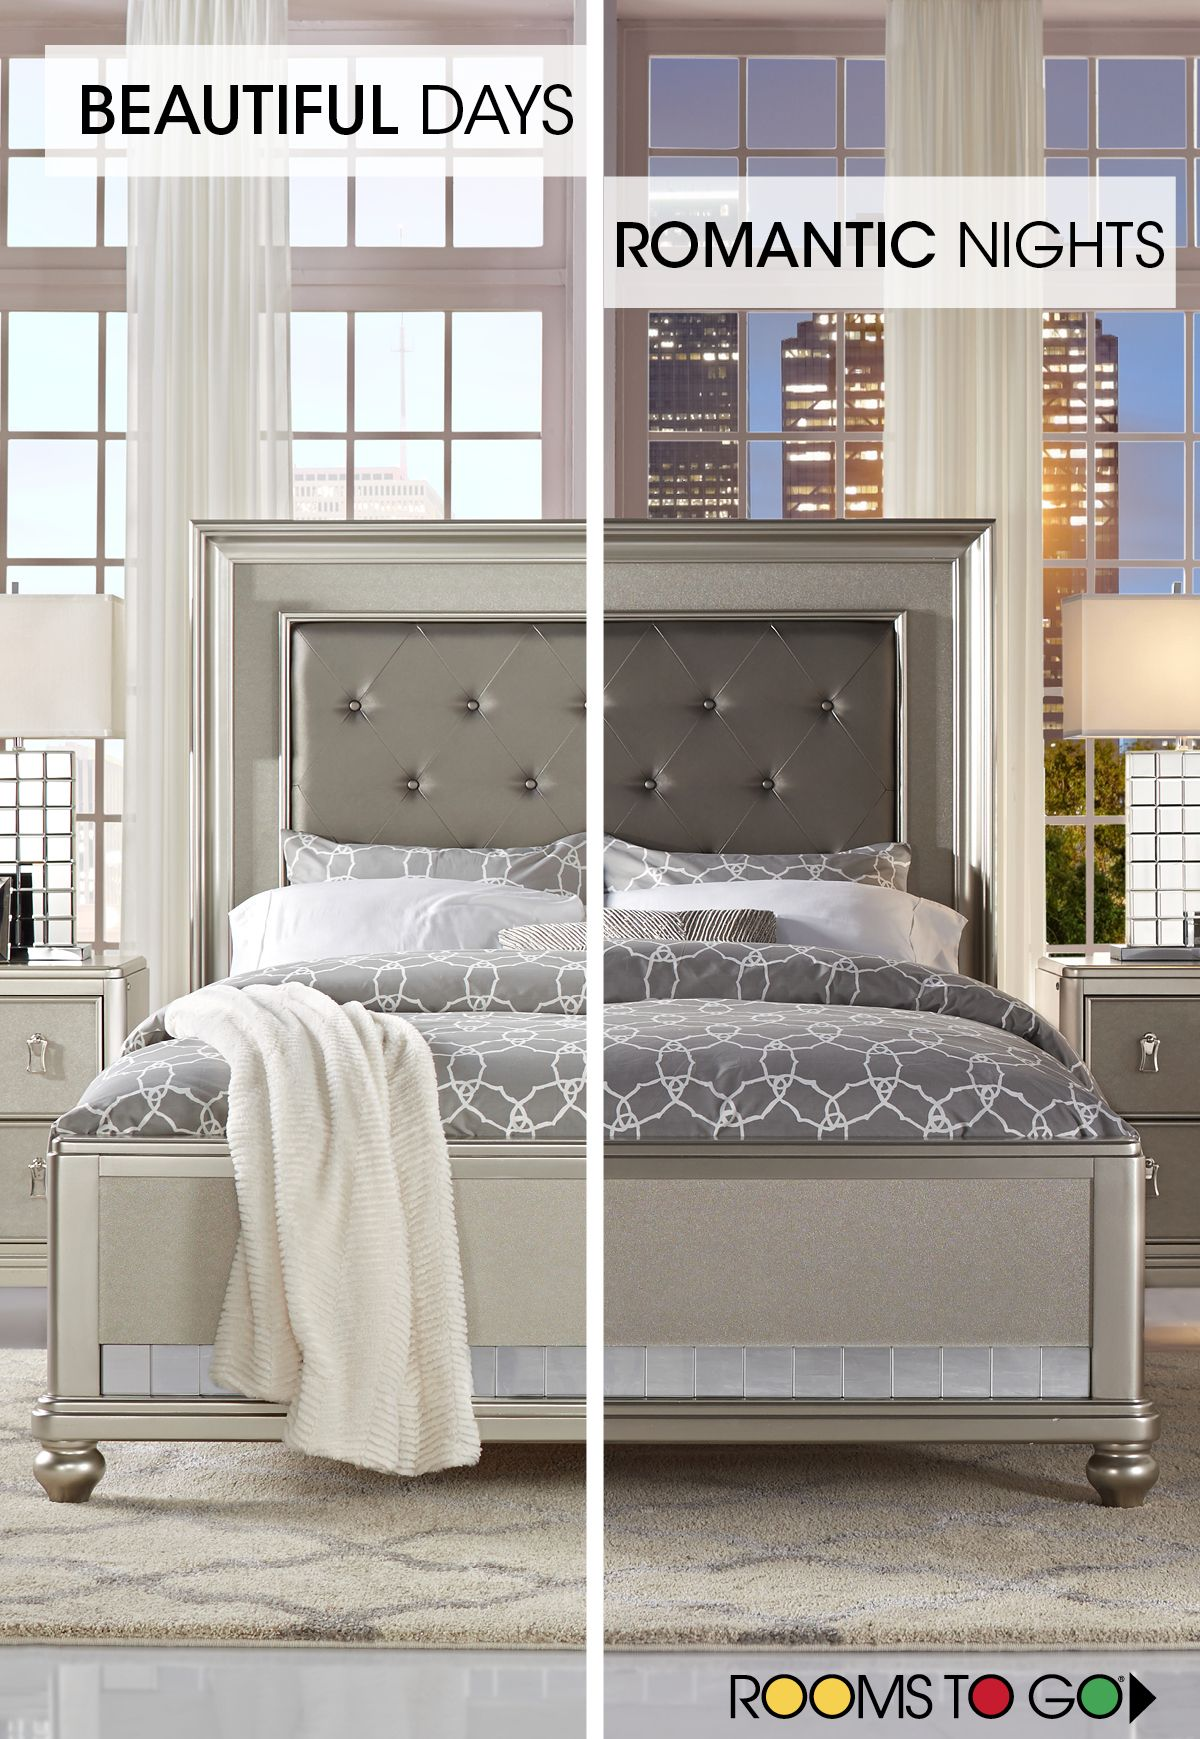 The Chic Paris Collection Combines Lavish Design With Smart Organizational Features And Indulge Cheap Queen Bedroom Sets Bedroom Sets Queen Paris Decor Bedroom